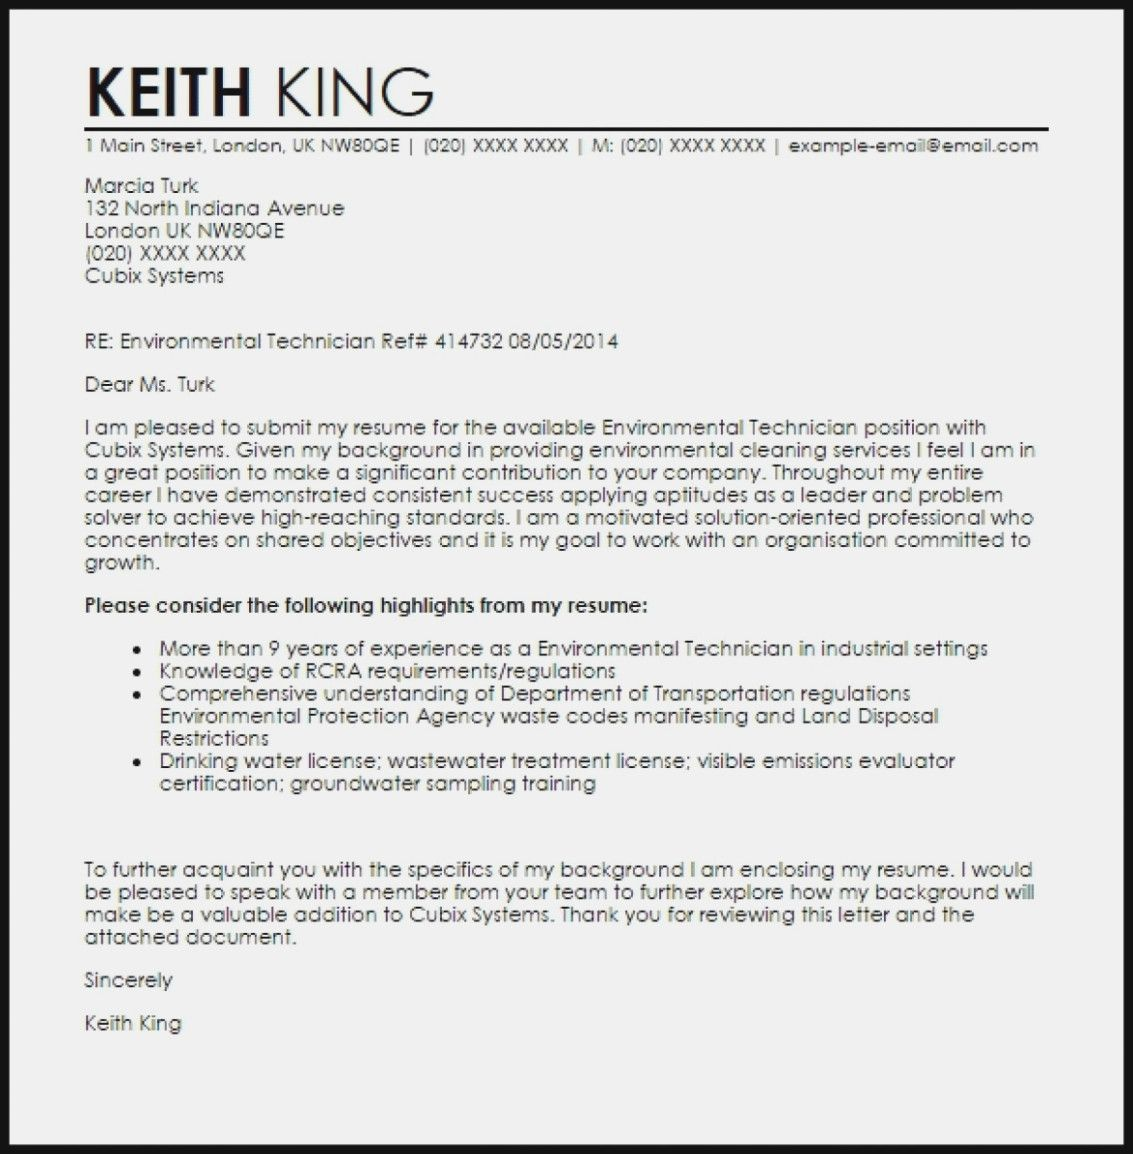 maintenance man resume sample objective maint best template cover letter human rights Resume Human Rights Resume Objective